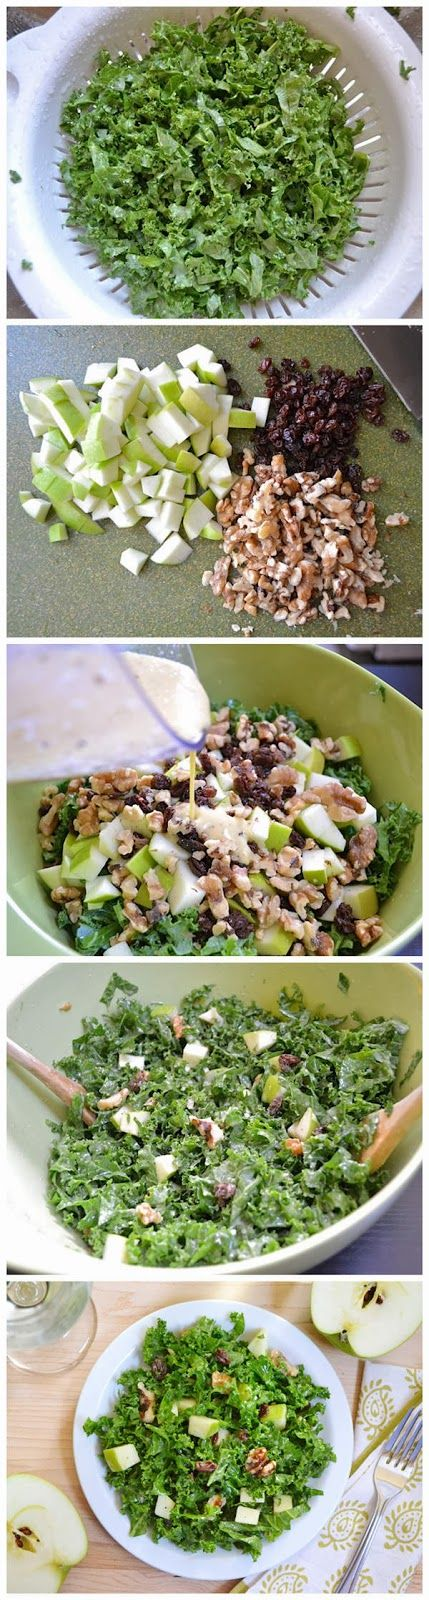 Apple Dijon Kale Salad - heaven in a bowl! PLEASE NOTE THAT THIS RECIPE SHOULD READ: 1/4 cup GOLDEN raisins, 1/3 cup olive oil and 1/4 cup vinegar, and I/2 cup walnuts! Sorry for the error!